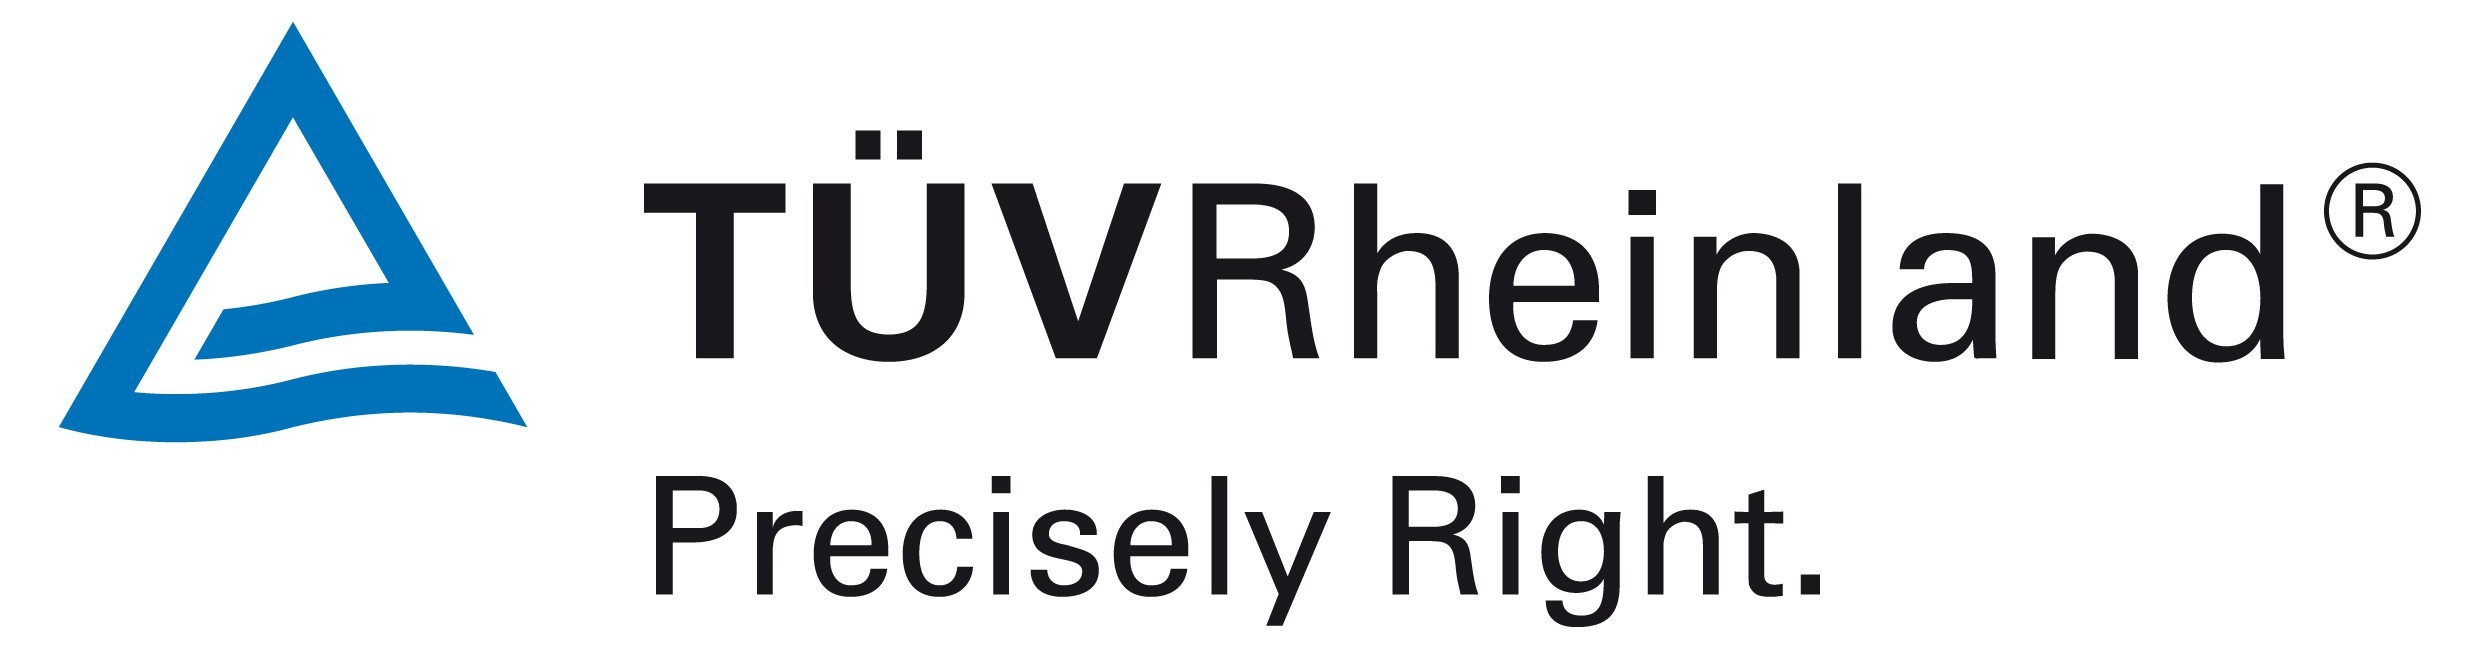 TUV Rheinland - TÜV Rheinland is a global leader in independent inspection services, founded 145 years ago. The grou